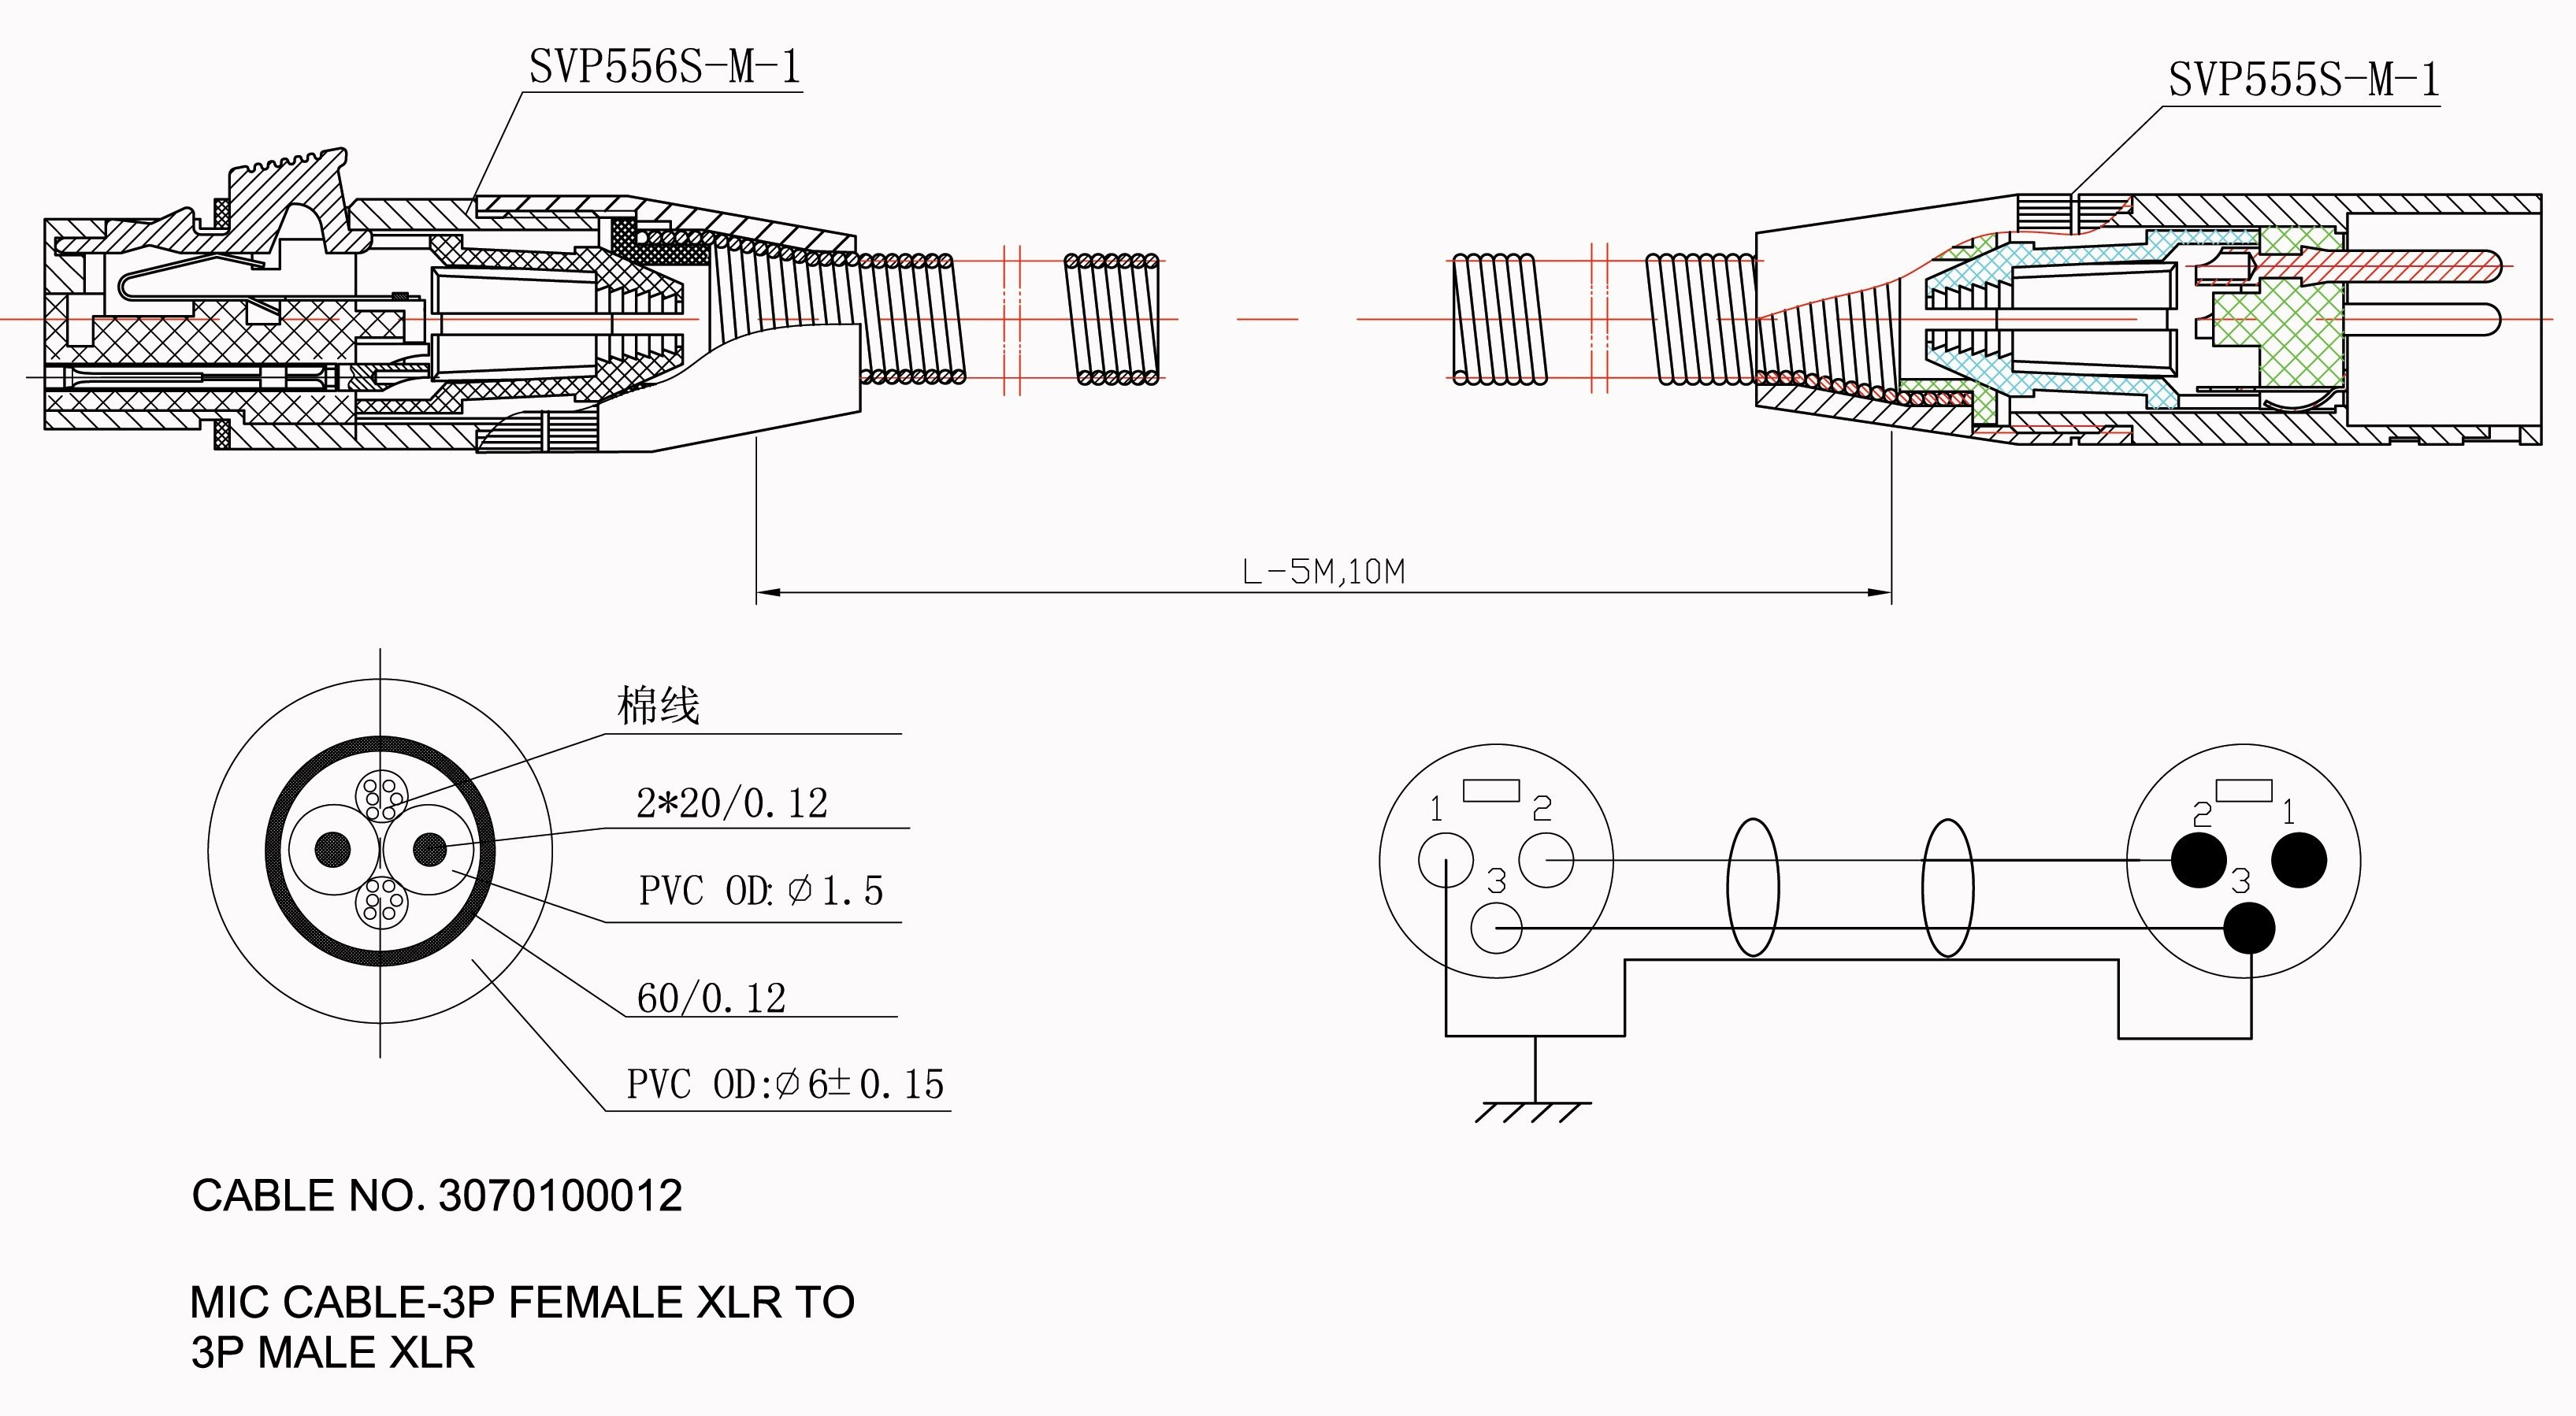 electrical outlet wiring diagram cool electrical outlet wiring diagram awesome amazing lor dmx wiring of electrical outlet wiring diagram